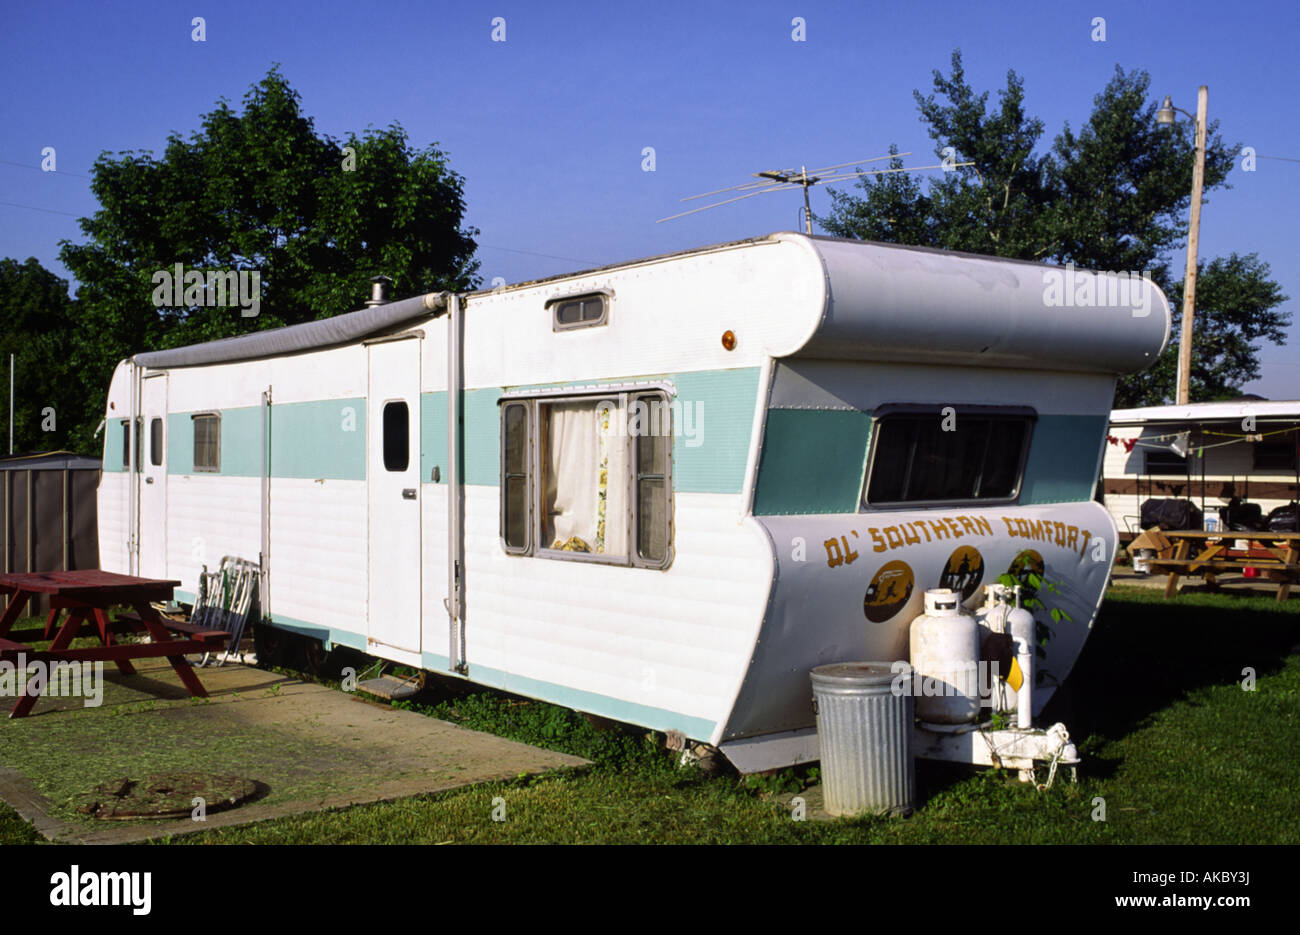 A 1960s era mobile home in an Amercian midwest trailer park Stock Photo